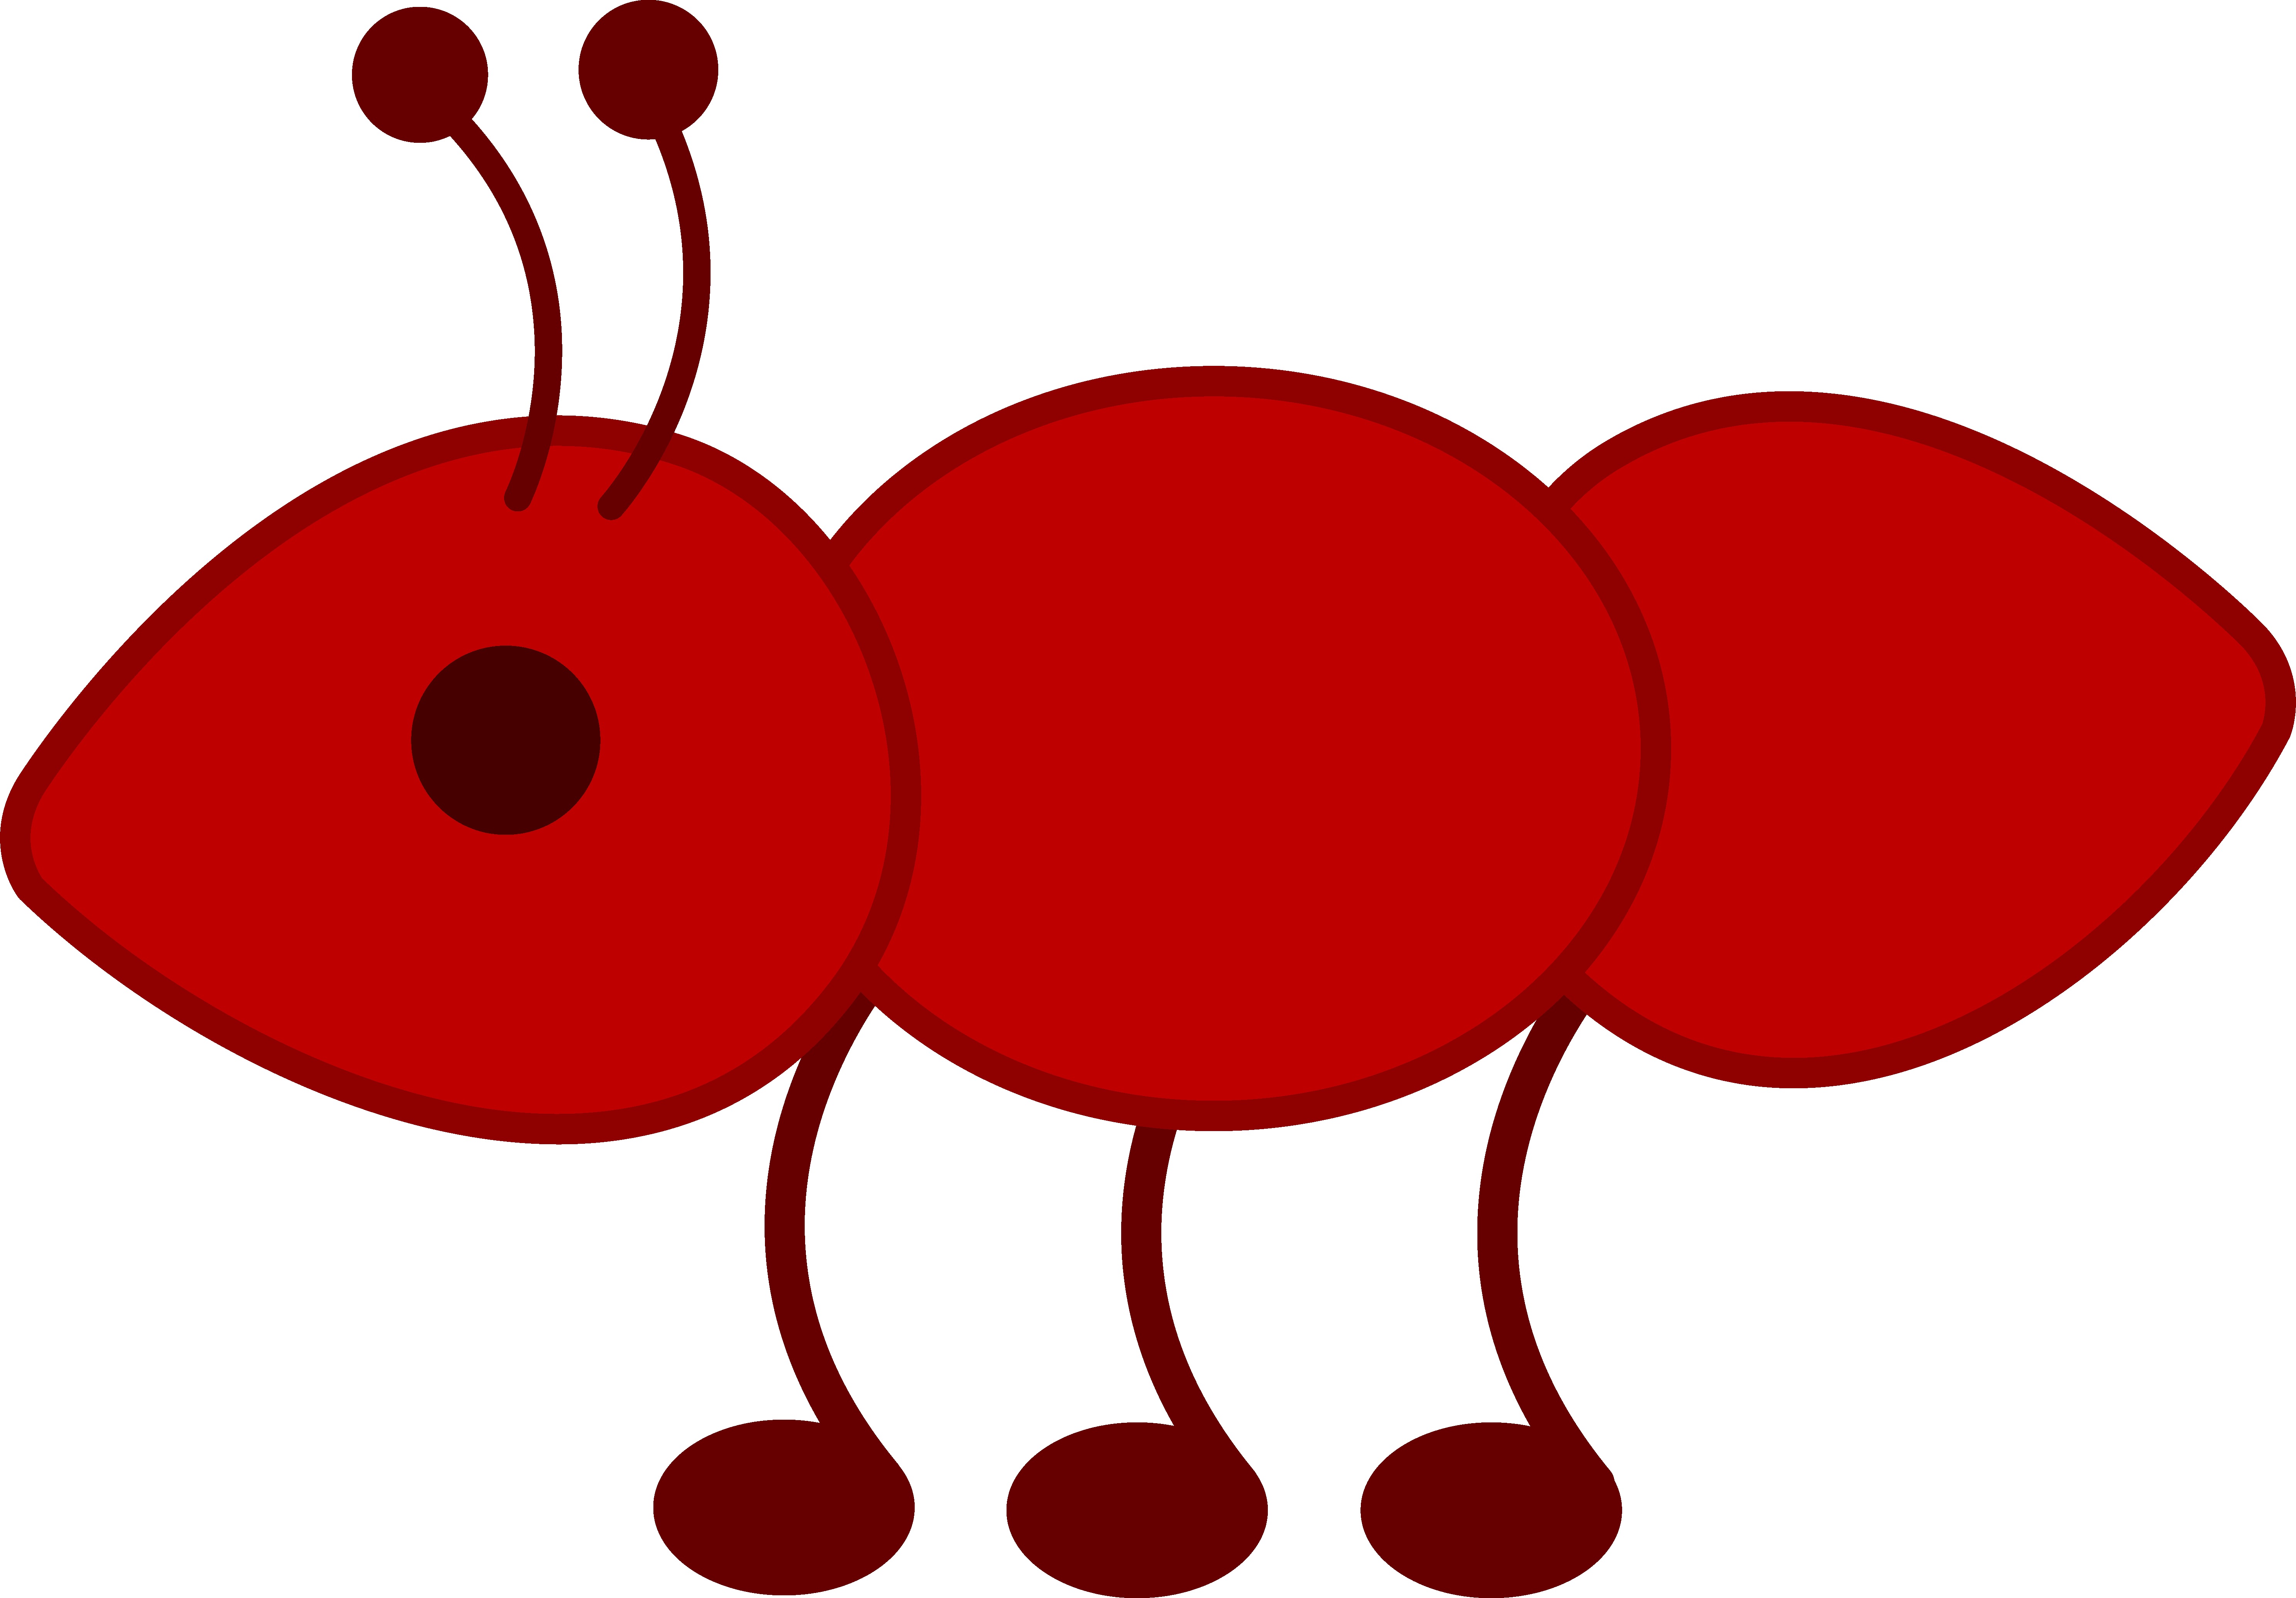 jpg library download Ants never sleep in their lifetime clipart. Little red ant free